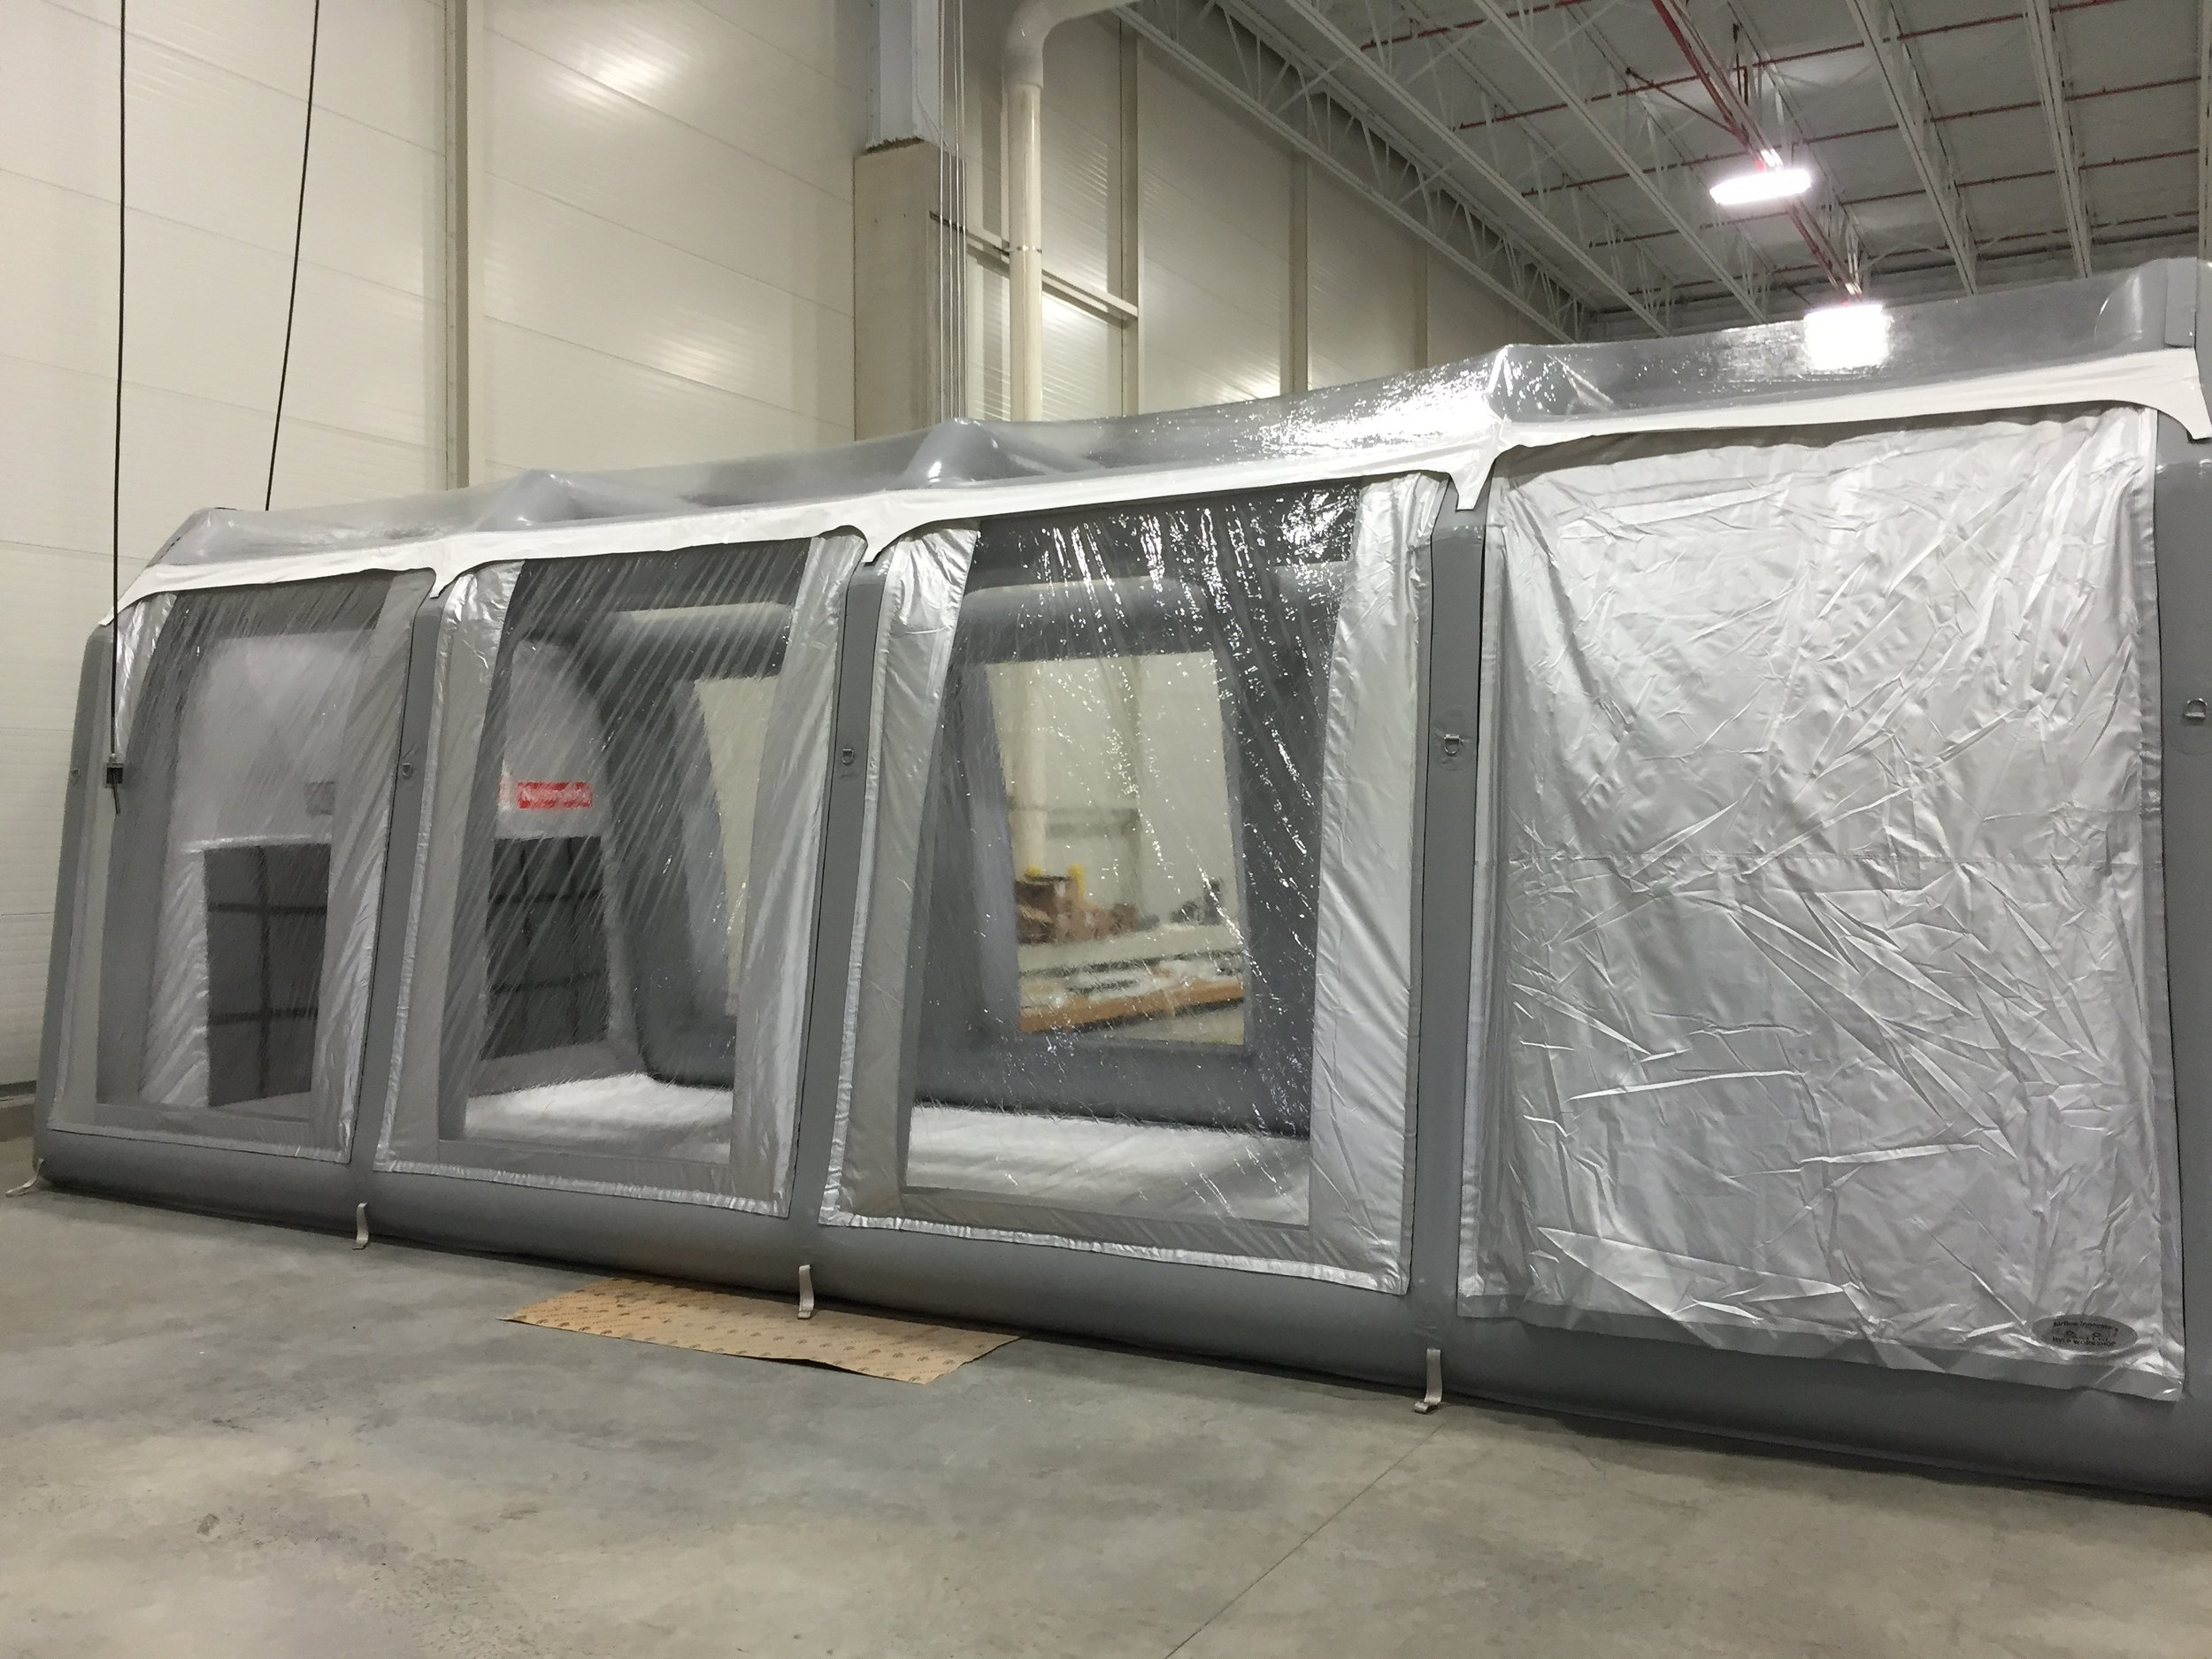 LARGE WORKSTATION - (28x15x9.1)This unit will fit all full size cars, trucks and SUV's with ease, as well as the full size sprinter and high top vans.